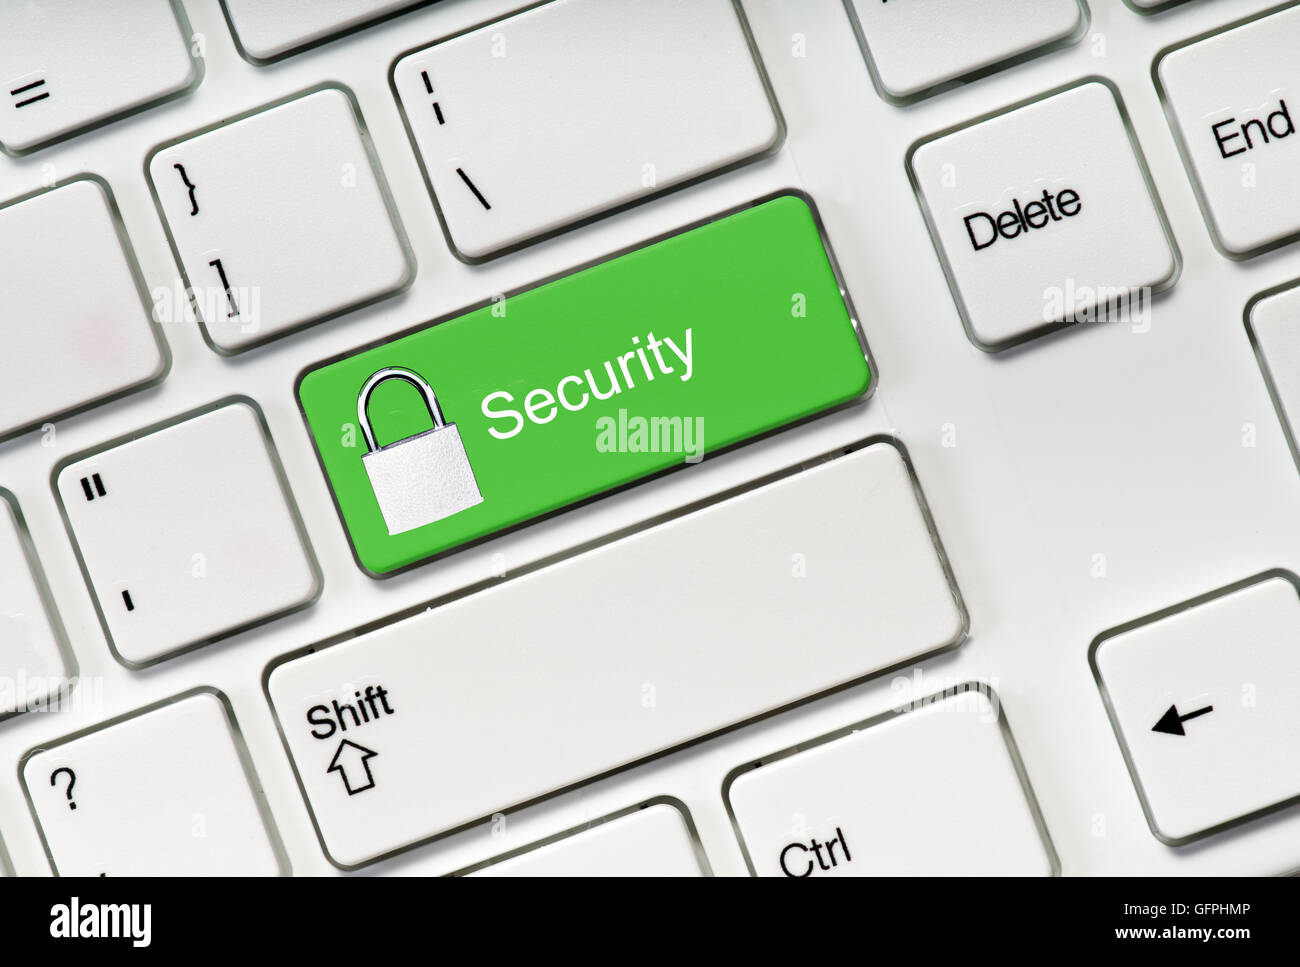 Security button on keyboard. Net safety concept - Stock Image